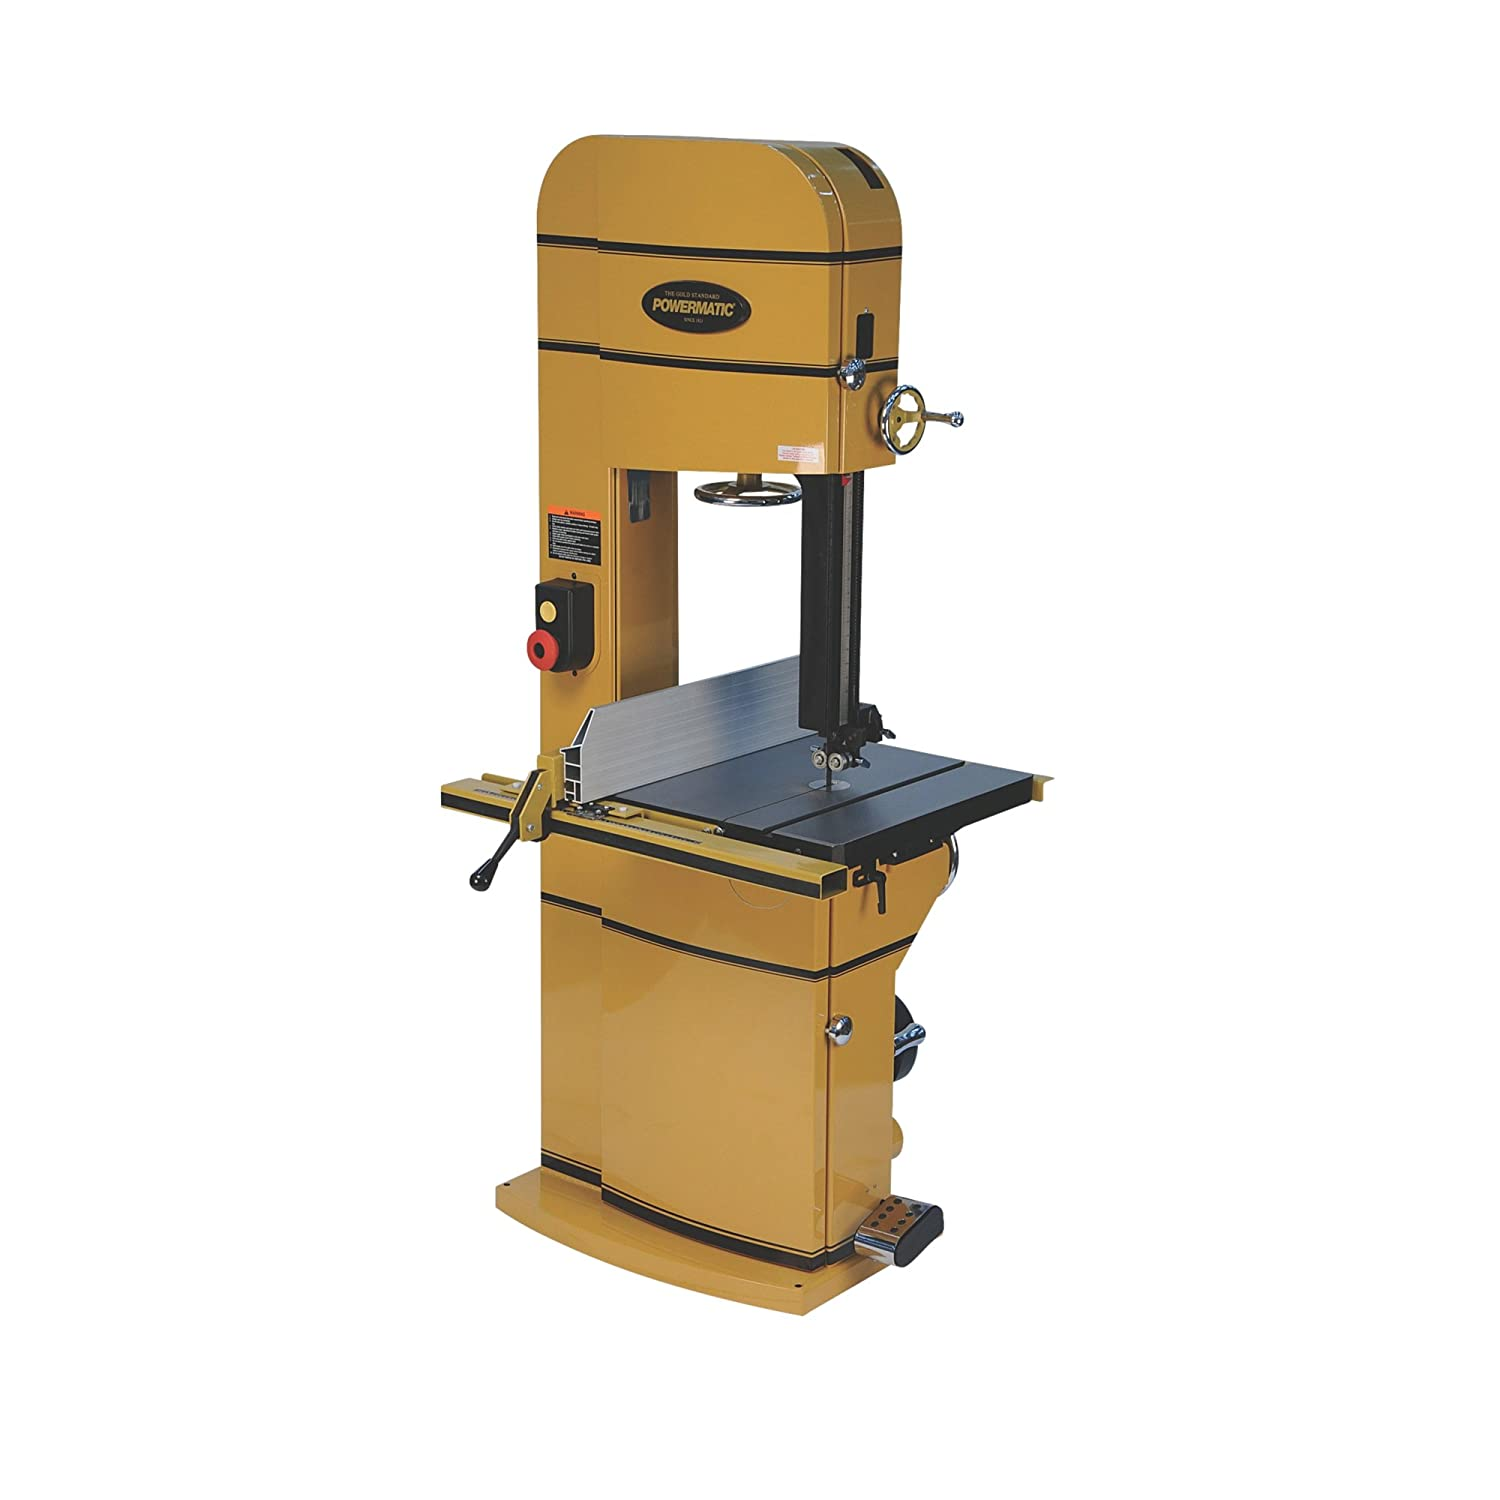 Powermatic pm1800 1791800 18 inch 1 phase 230v 5hp band saw powermatic pm1800 1791800 18 inch 1 phase 230v 5hp band saw power band saws amazon greentooth Gallery